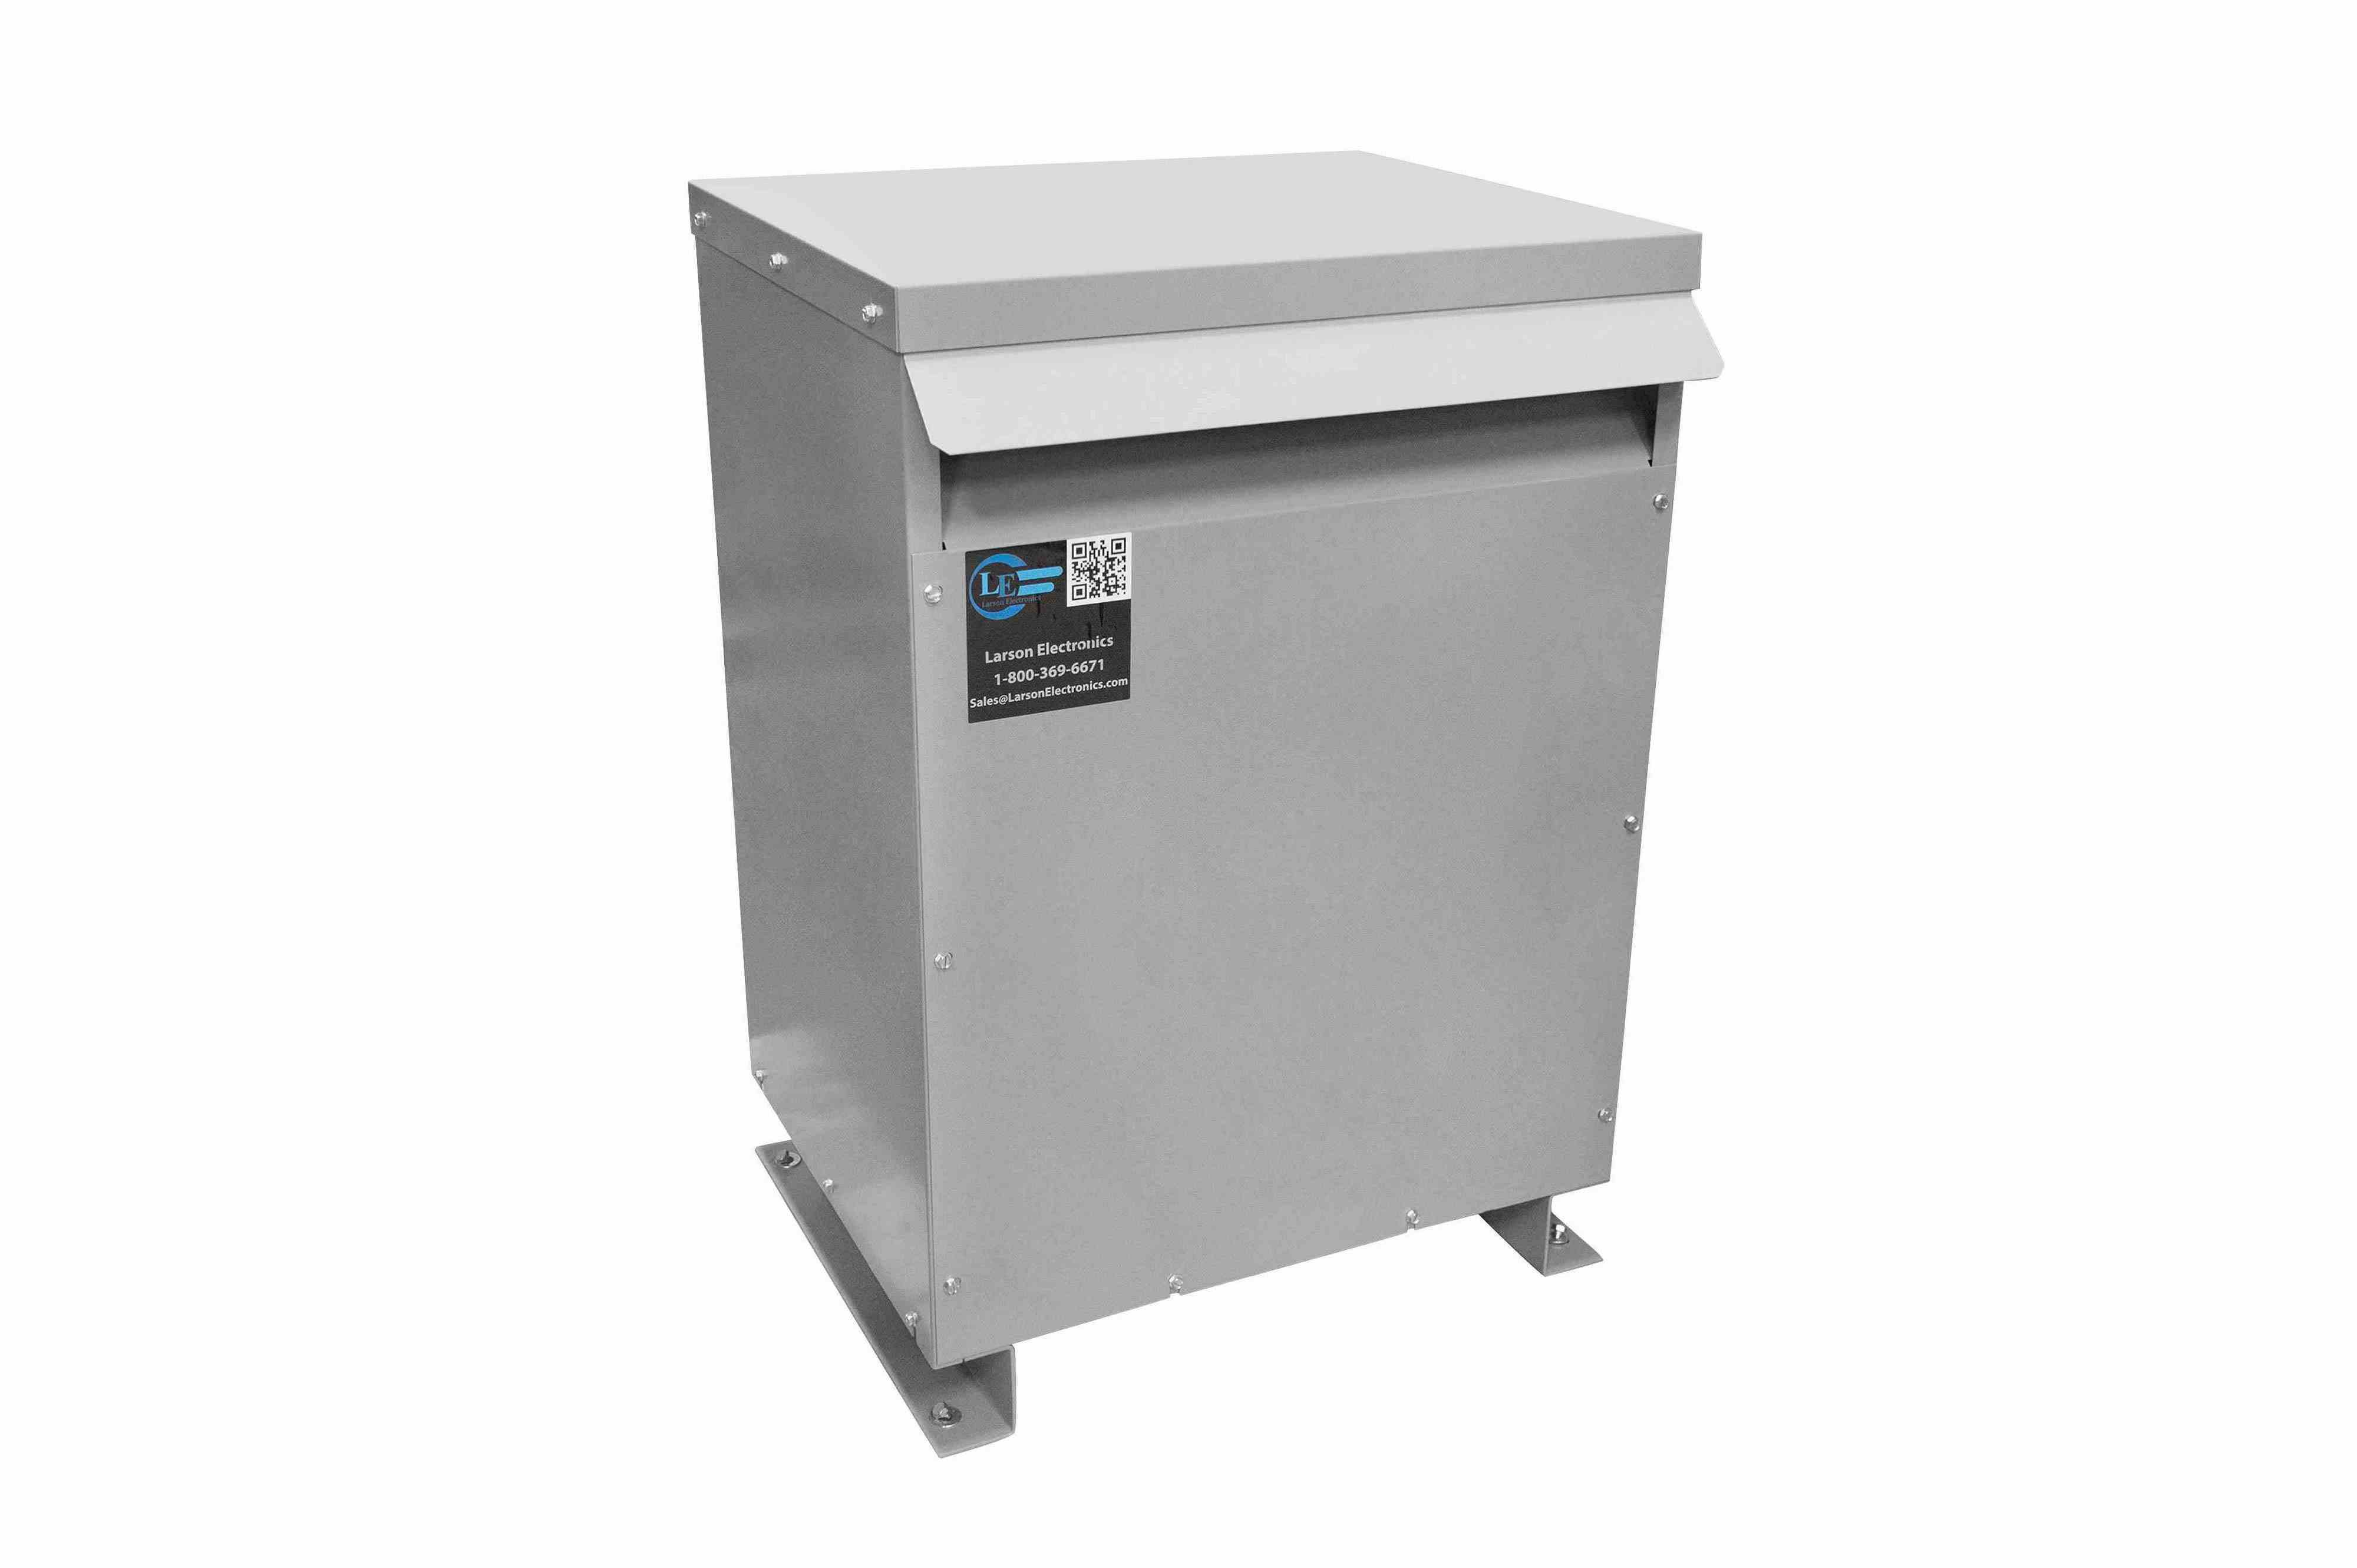 19 kVA 3PH DOE Transformer, 220V Delta Primary, 208Y/120 Wye-N Secondary, N3R, Ventilated, 60 Hz